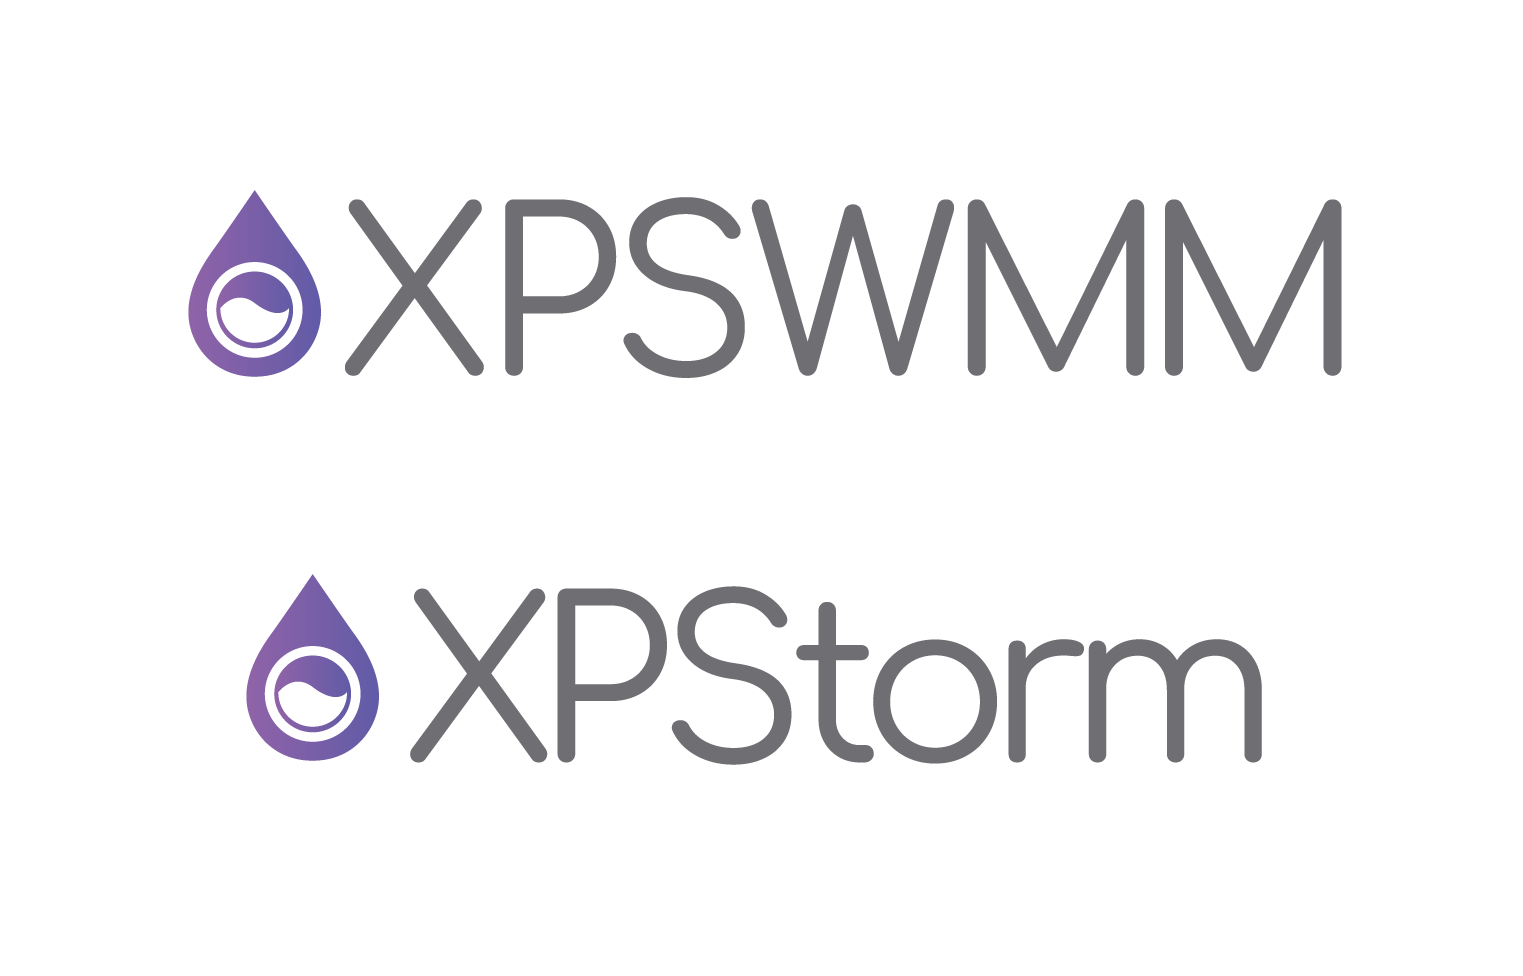 xpswmm/xpstorm Resource Center